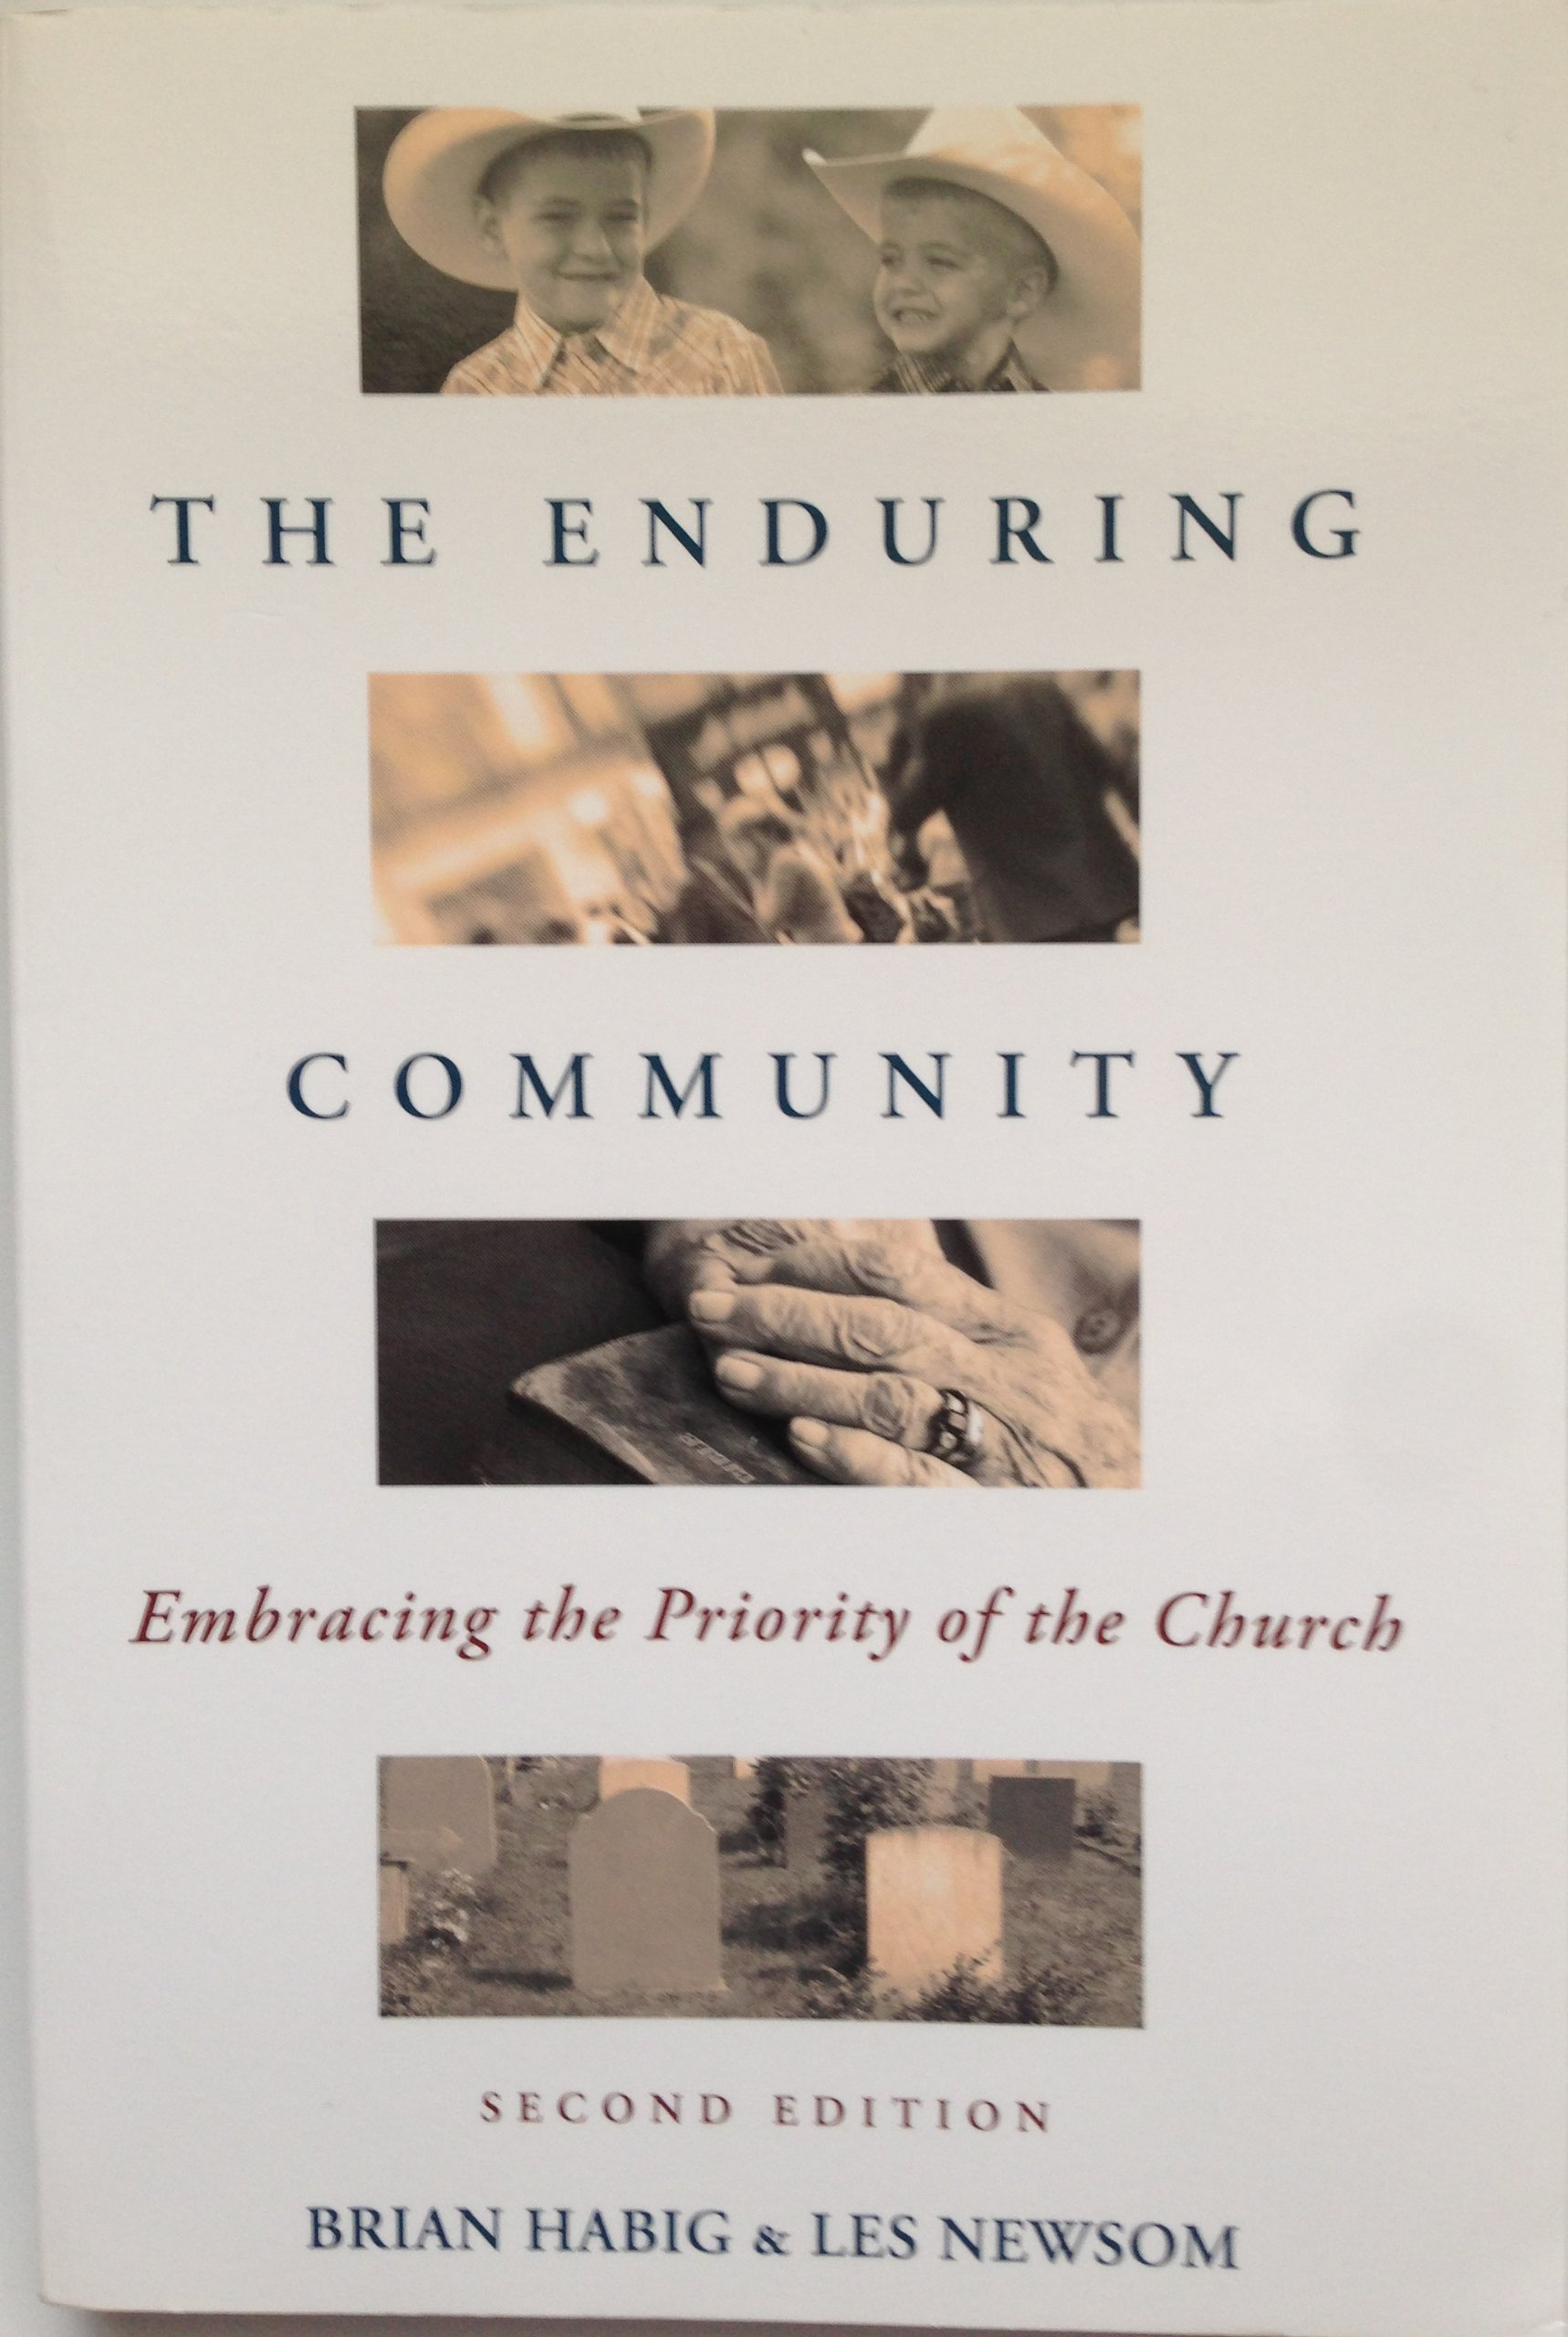 THE ENDURING COMMUNITY Embracing the Priority of the Church pdf